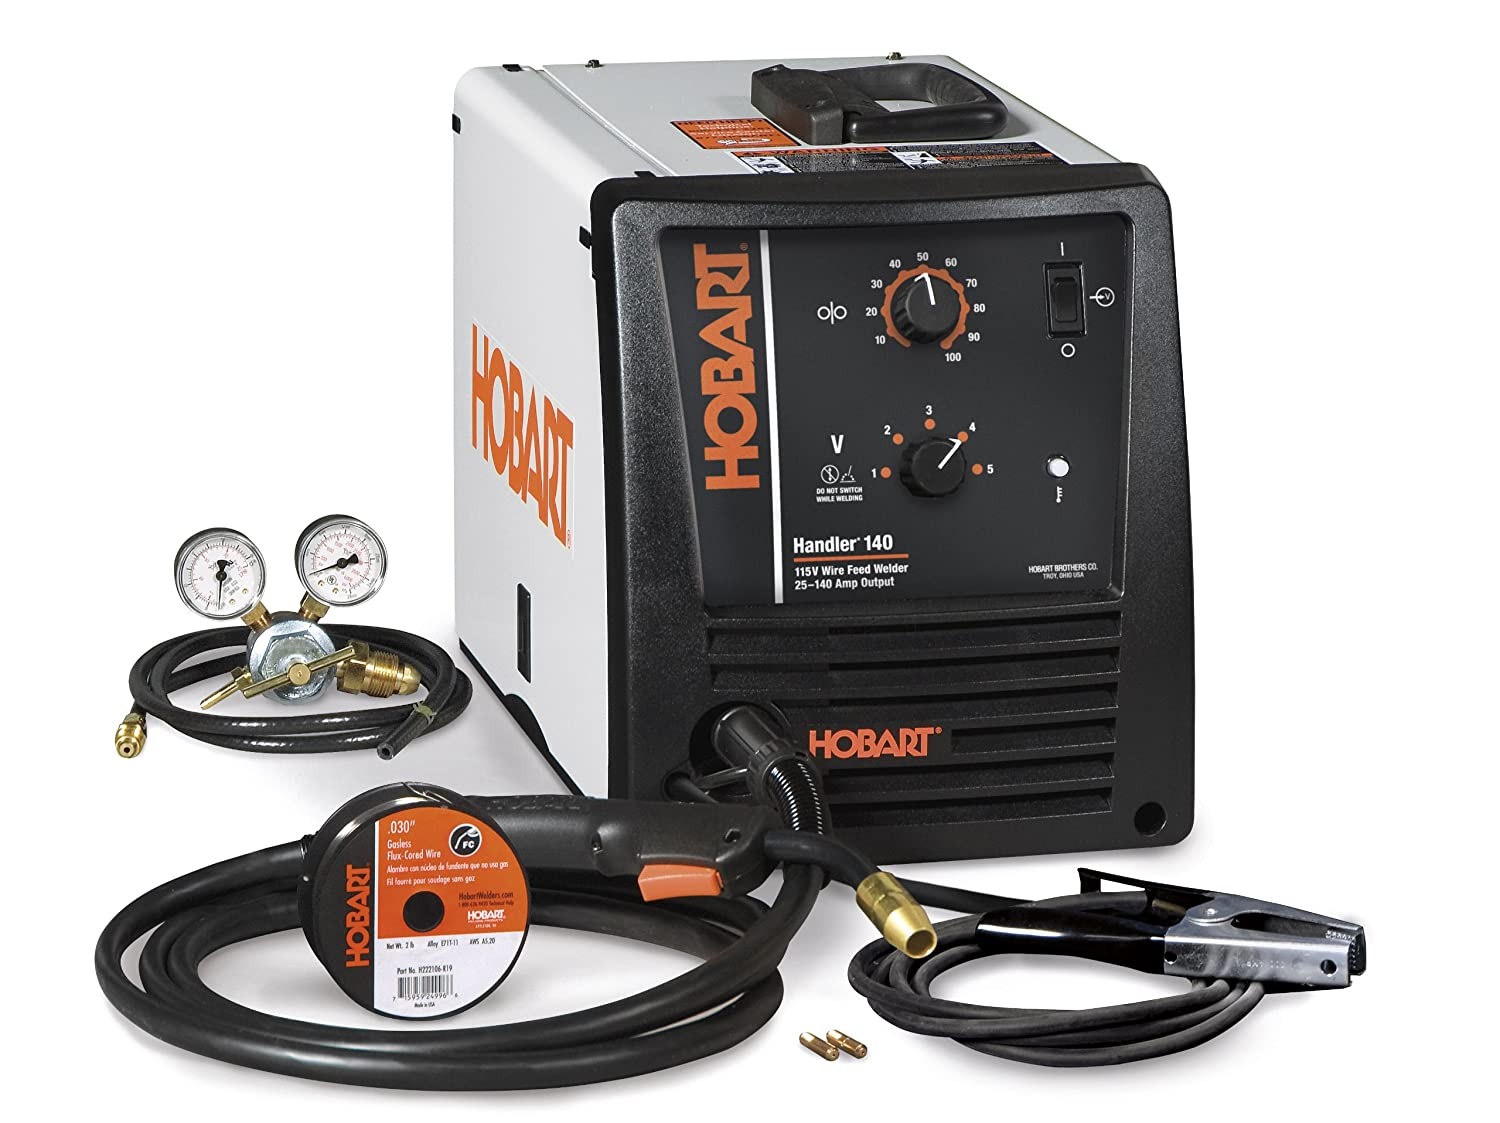 hobart 500559 handler 140 mig welder 115v mig welding equipment rh amazon com